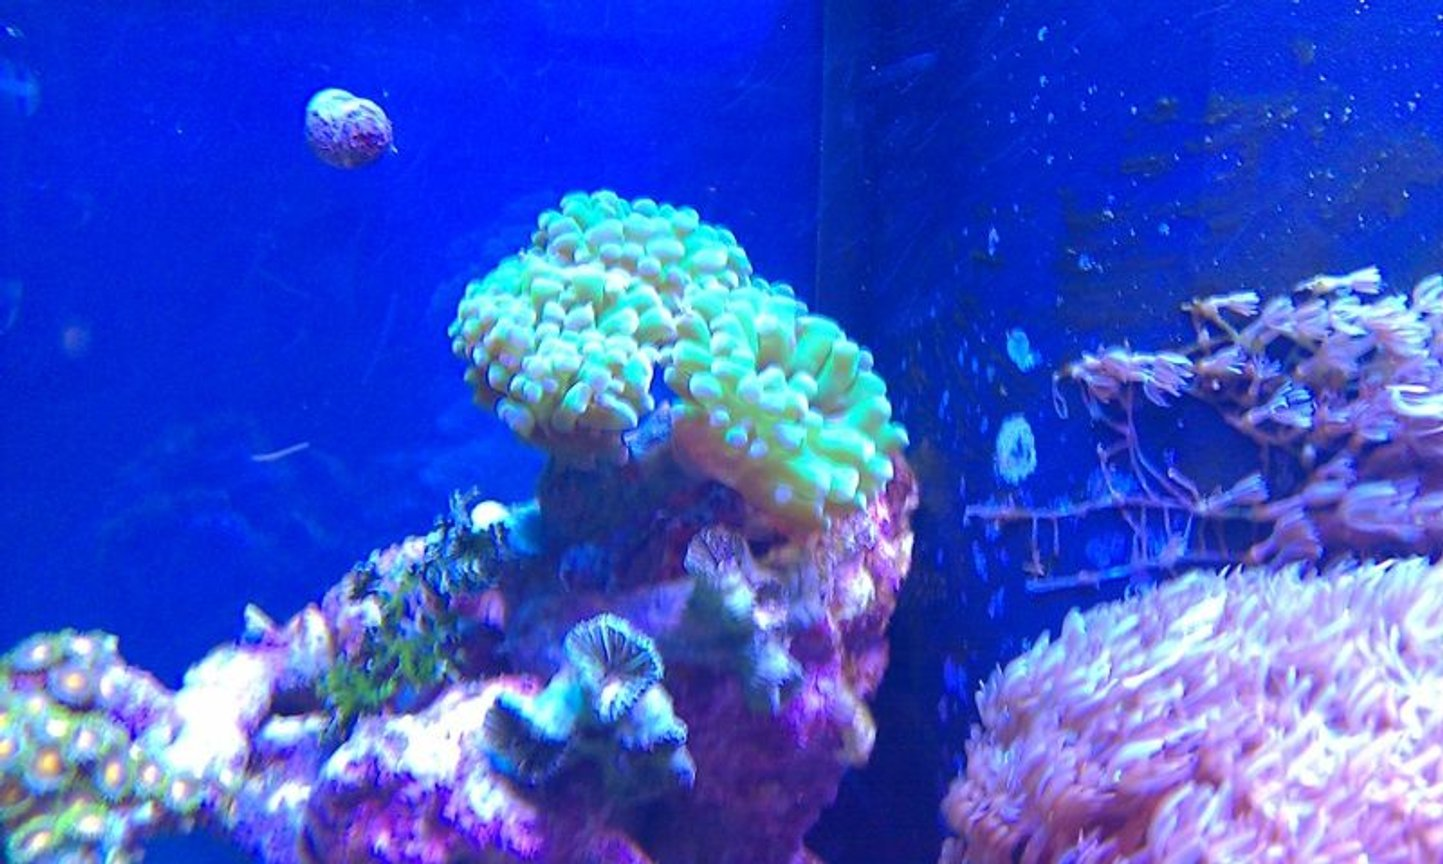 corals inverts - euphyllia paradivisa - frogspawn coral stocking in 72 gallons tank - Frog spawn?